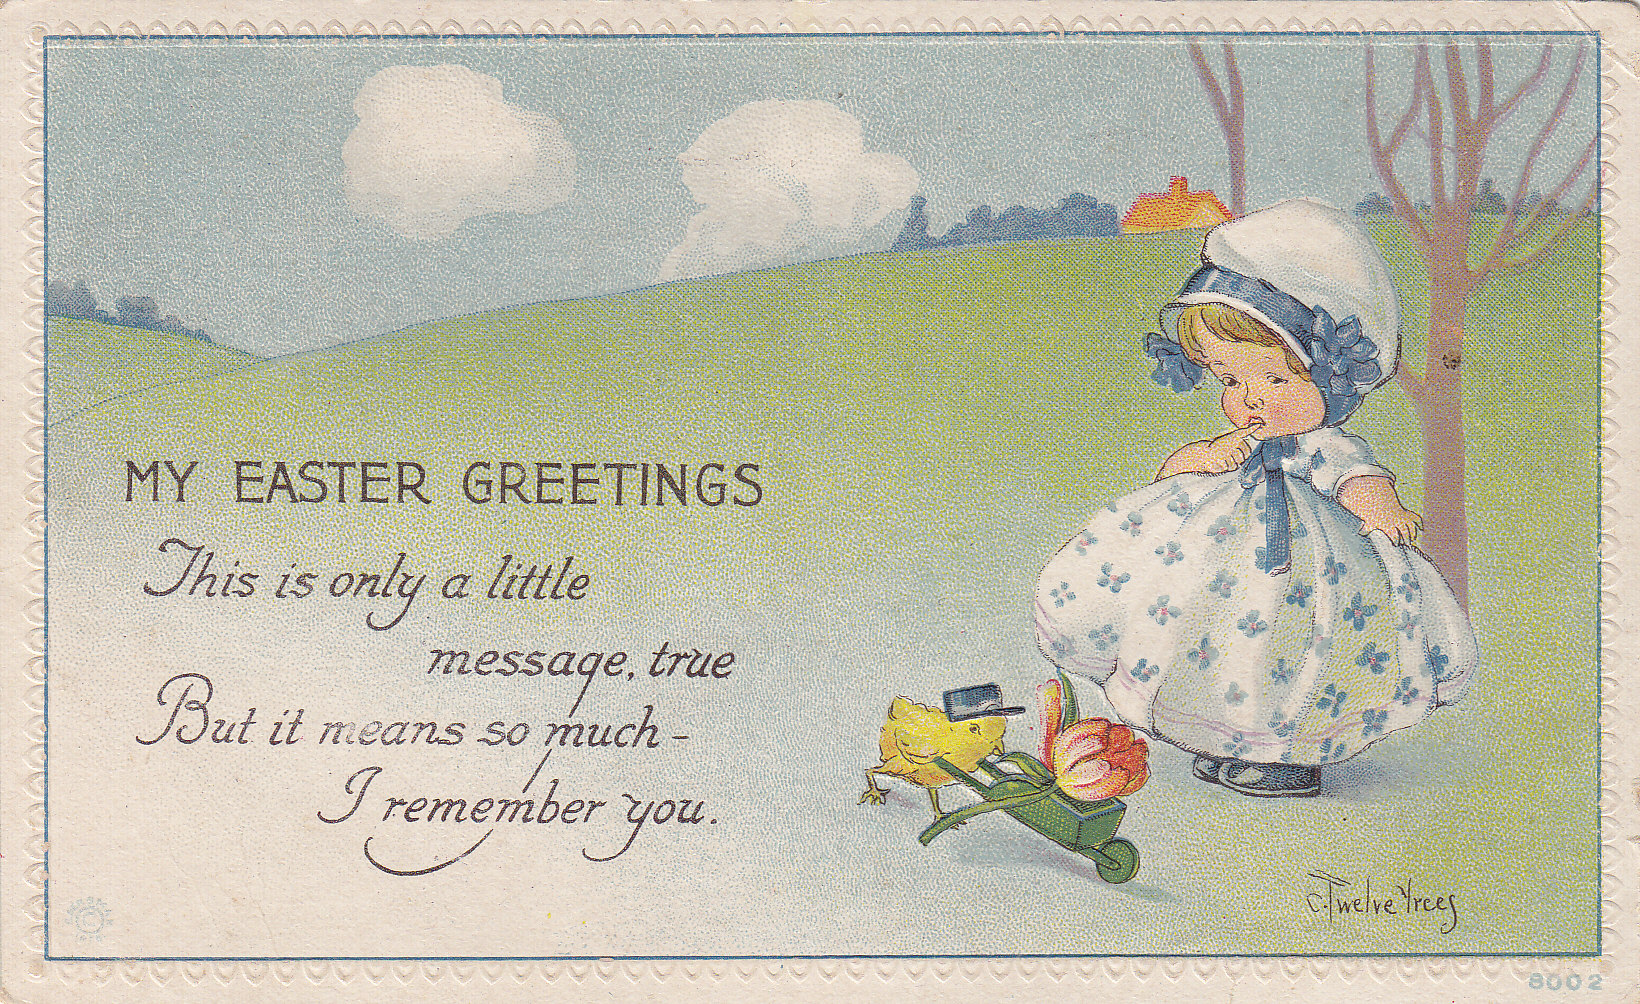 Twelvetrees Easter Series – Easter Messages for Cards